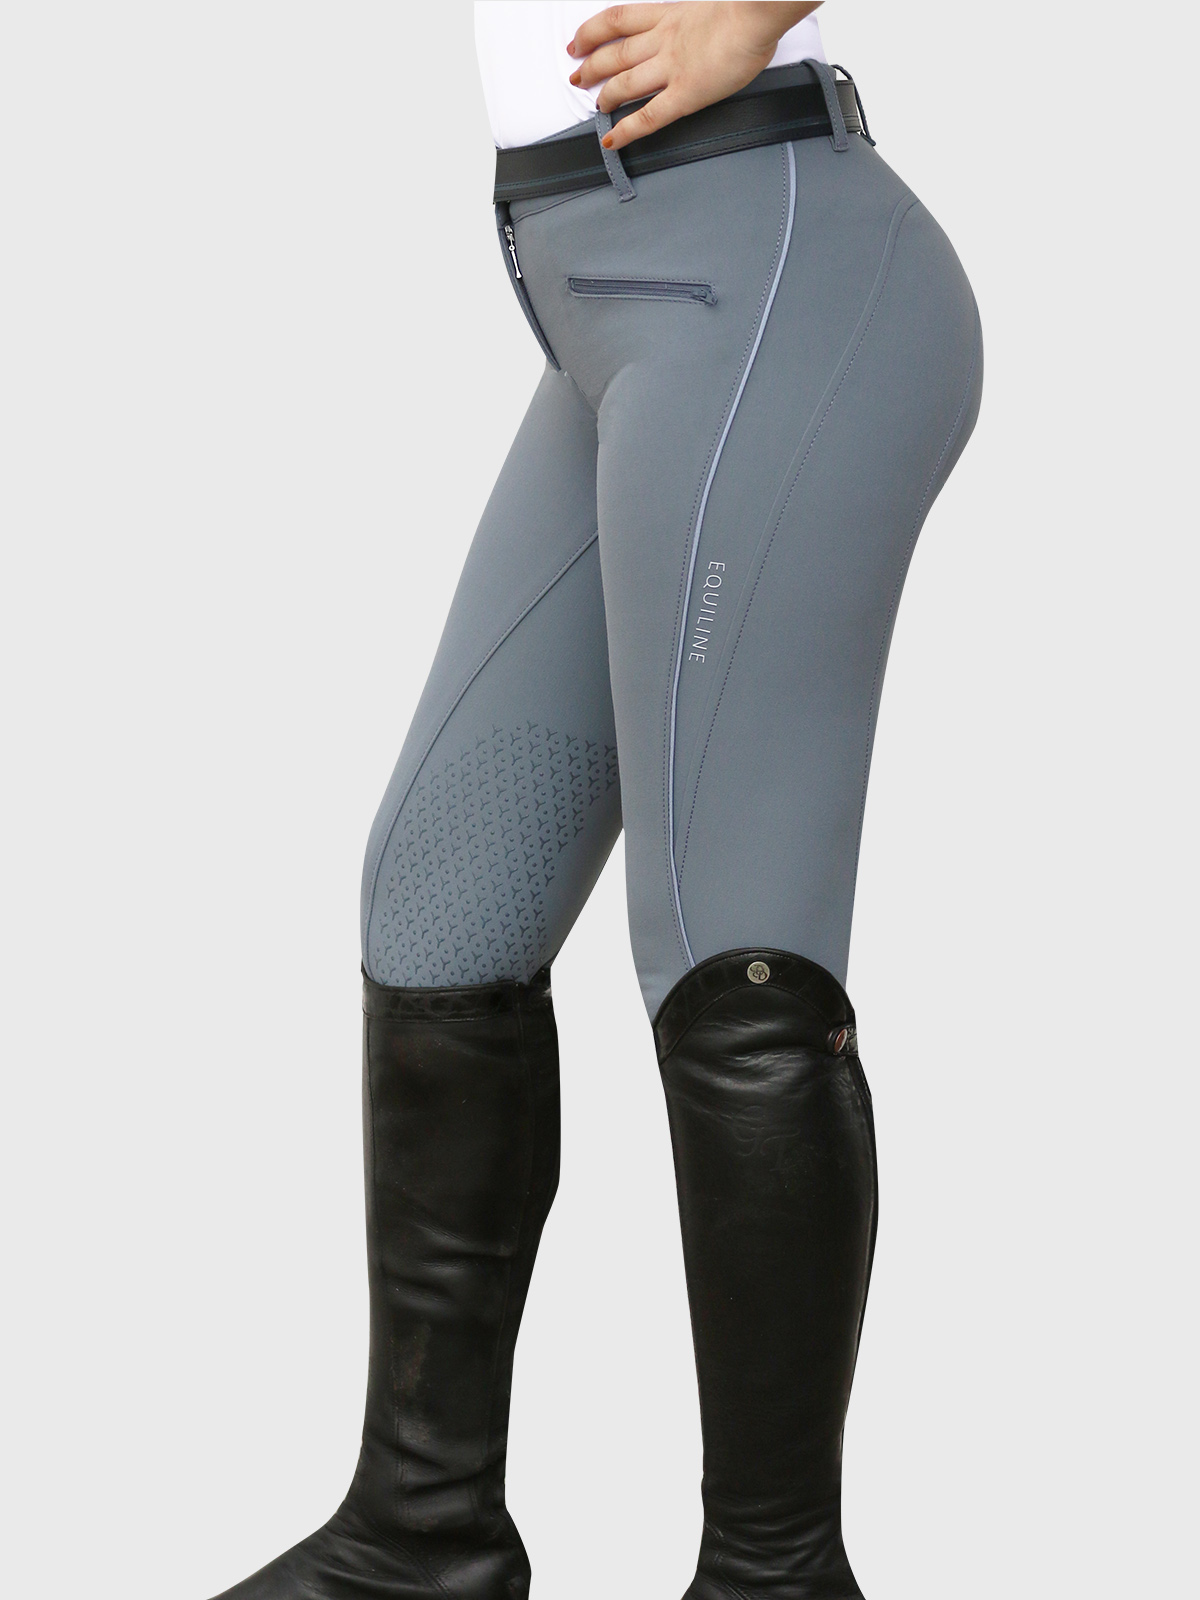 CAMILA KNEE GRIP BREECHES 4